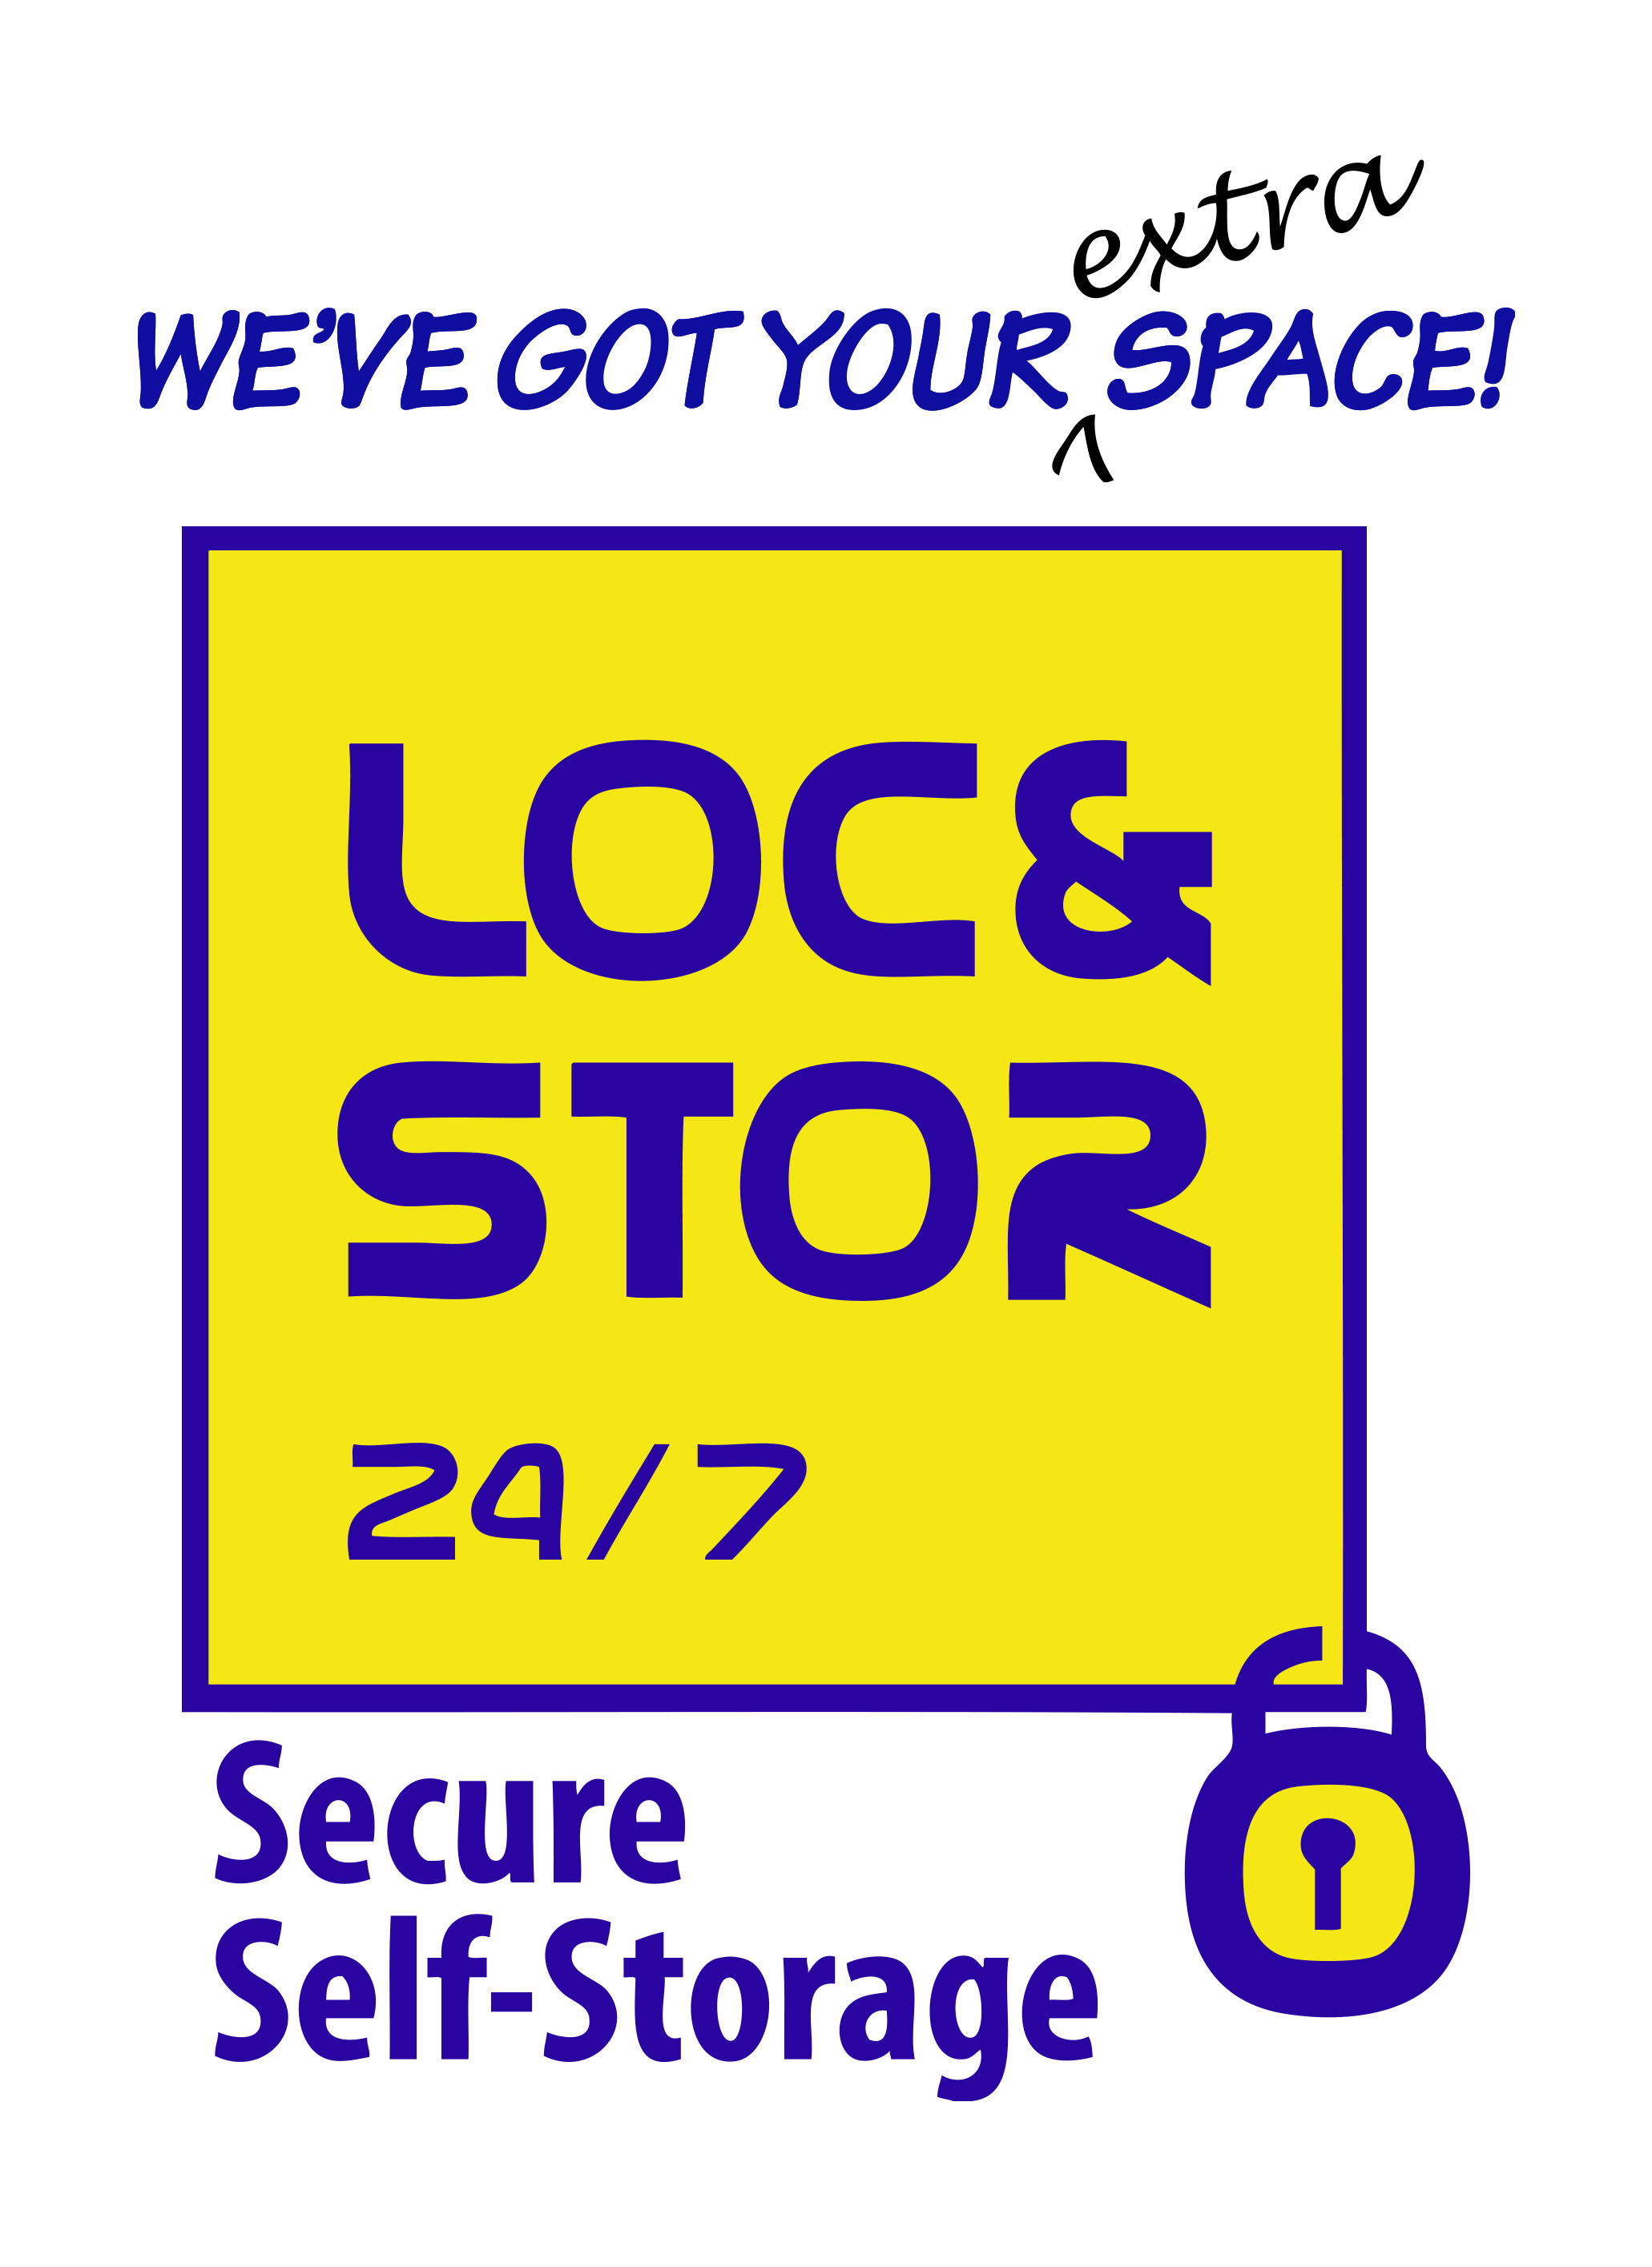 Loc&Stor 24/7 Secure Self-storage